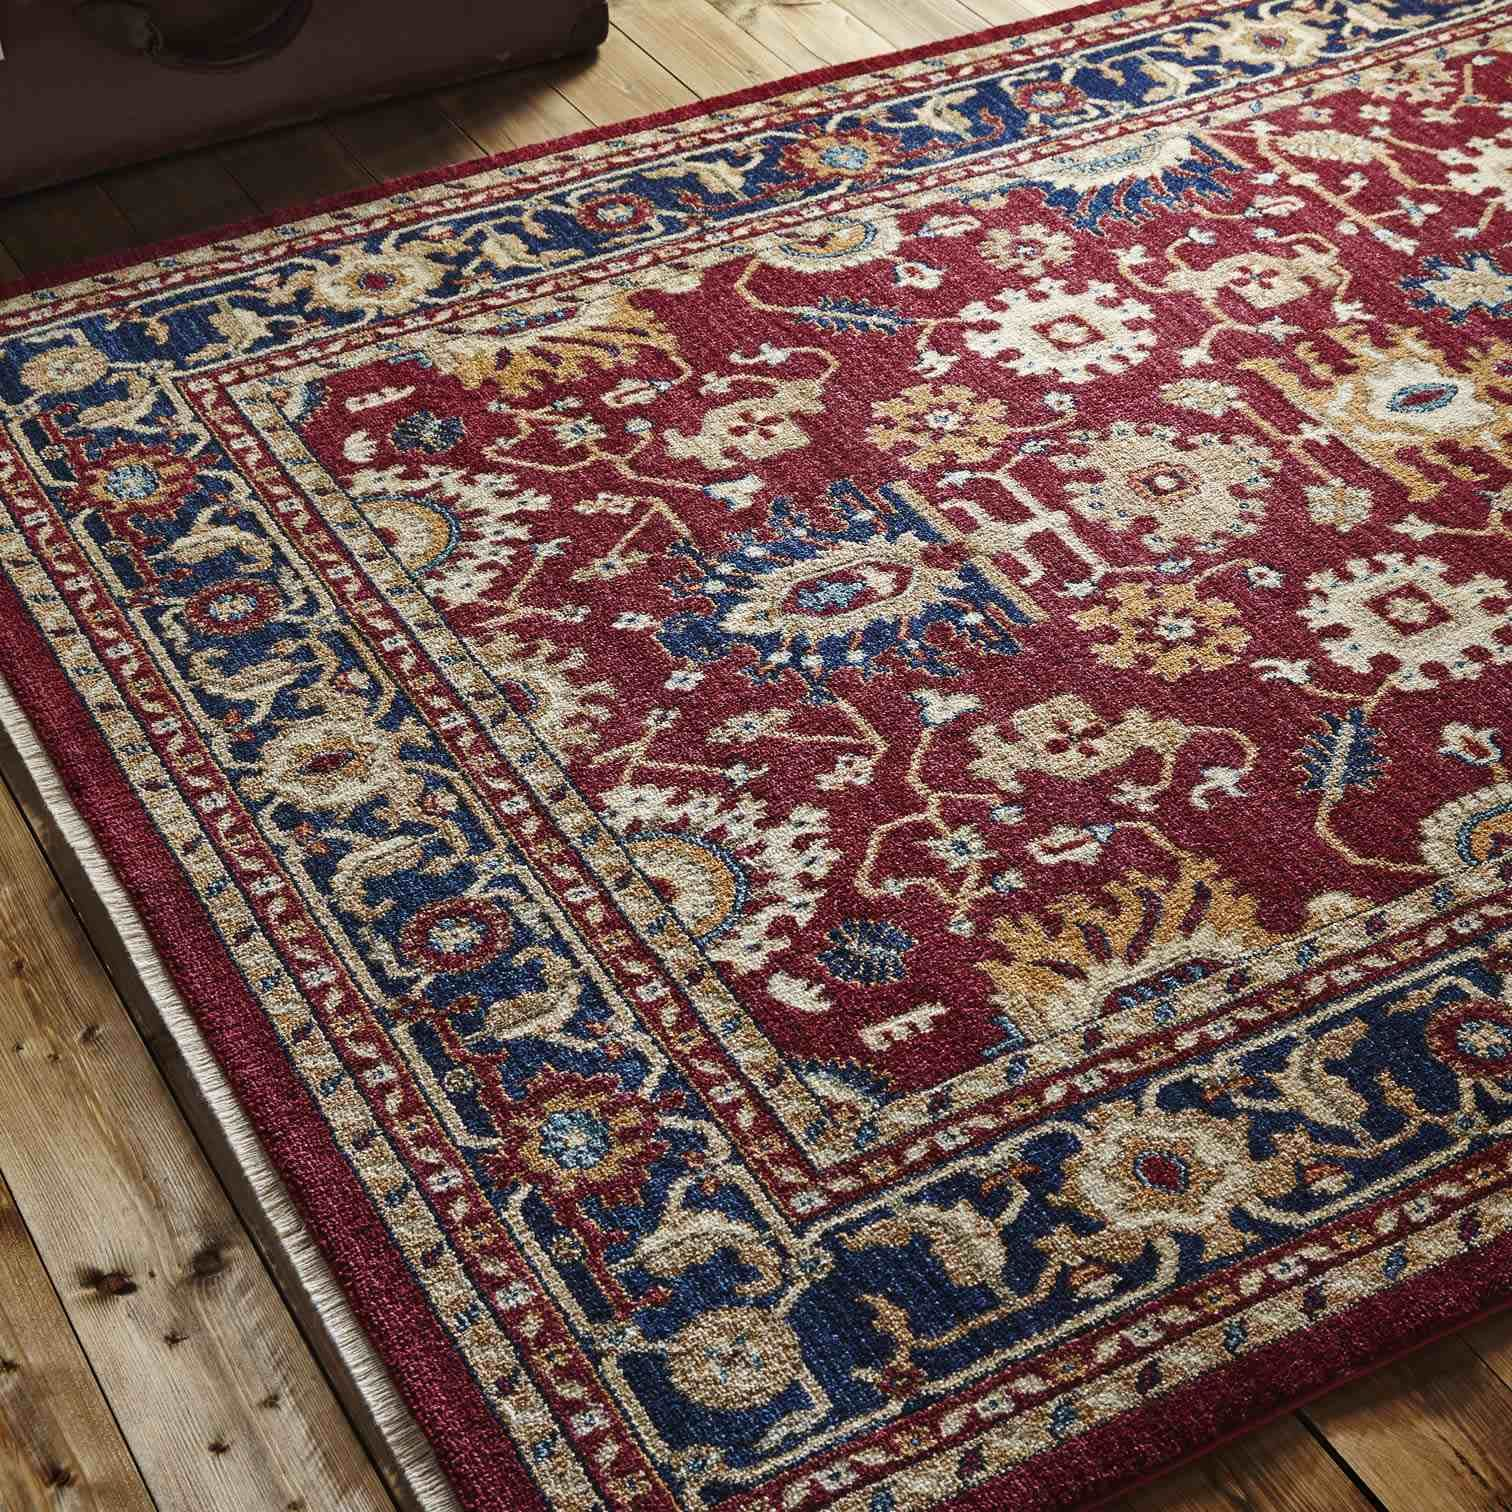 Classic Tabriz Persian Style Rug In Red And Navy Persian Style Rug Navy Rug Persian Rug Designs